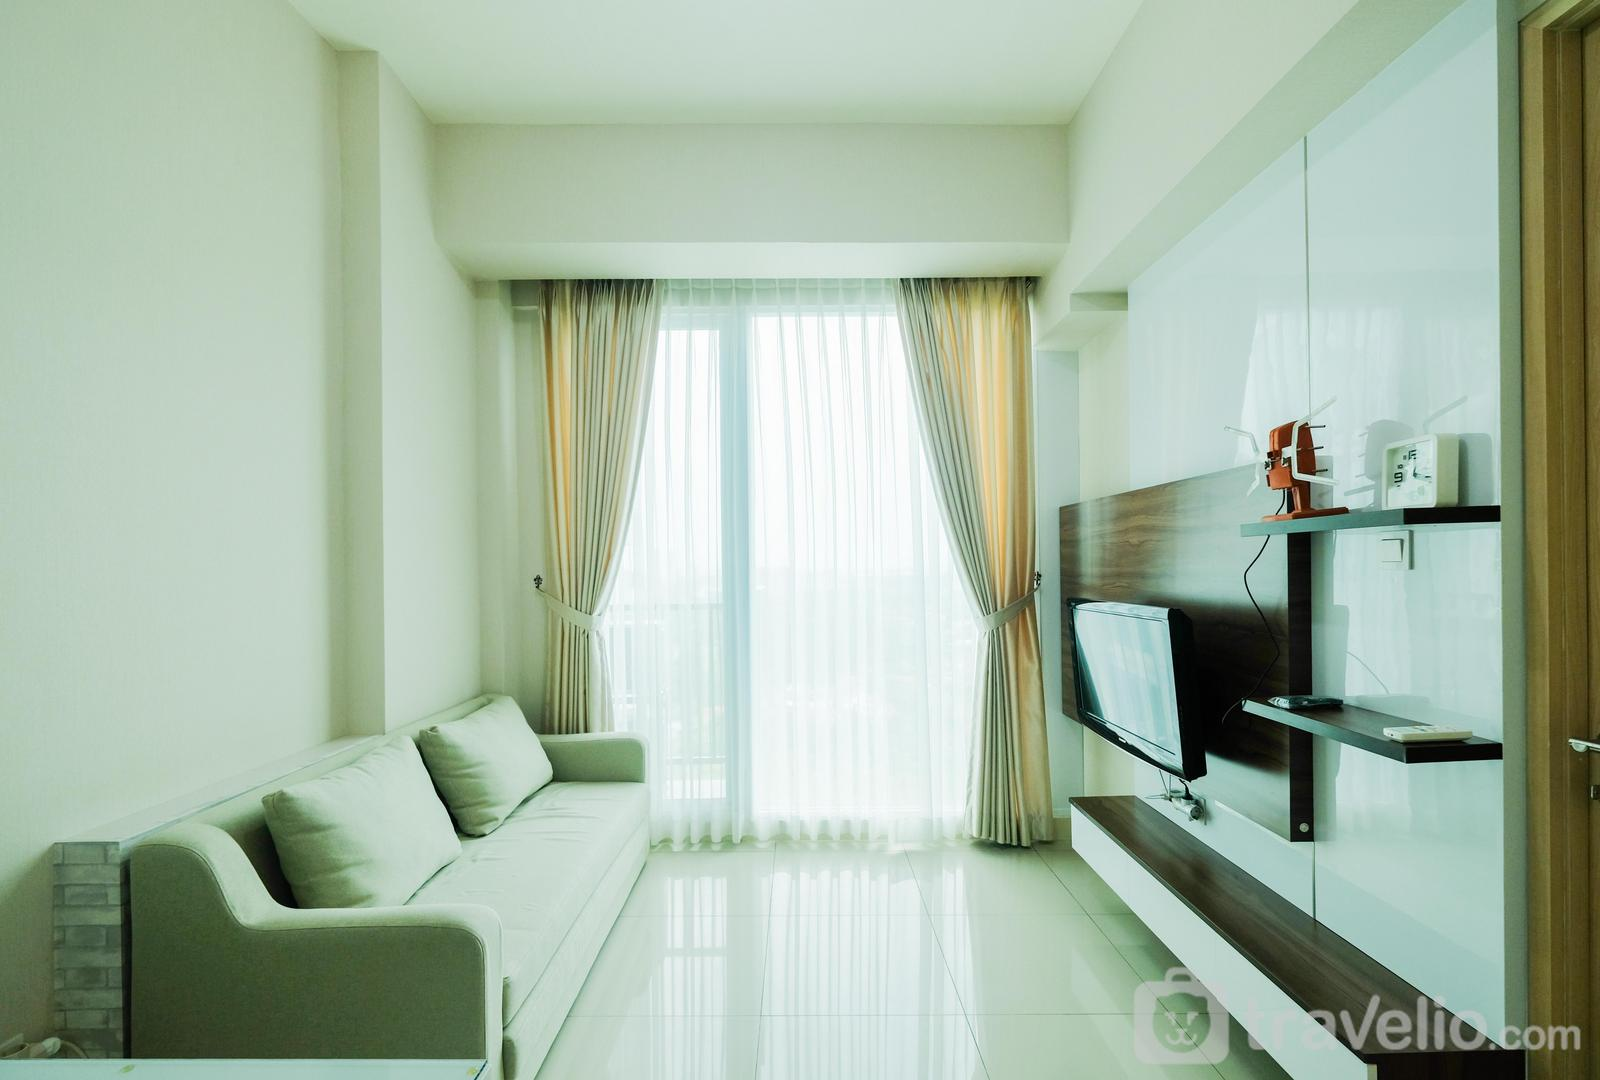 Tree Park Apartment - New Furnished 1BR @ Tree Park Apartment BSD By Travelio